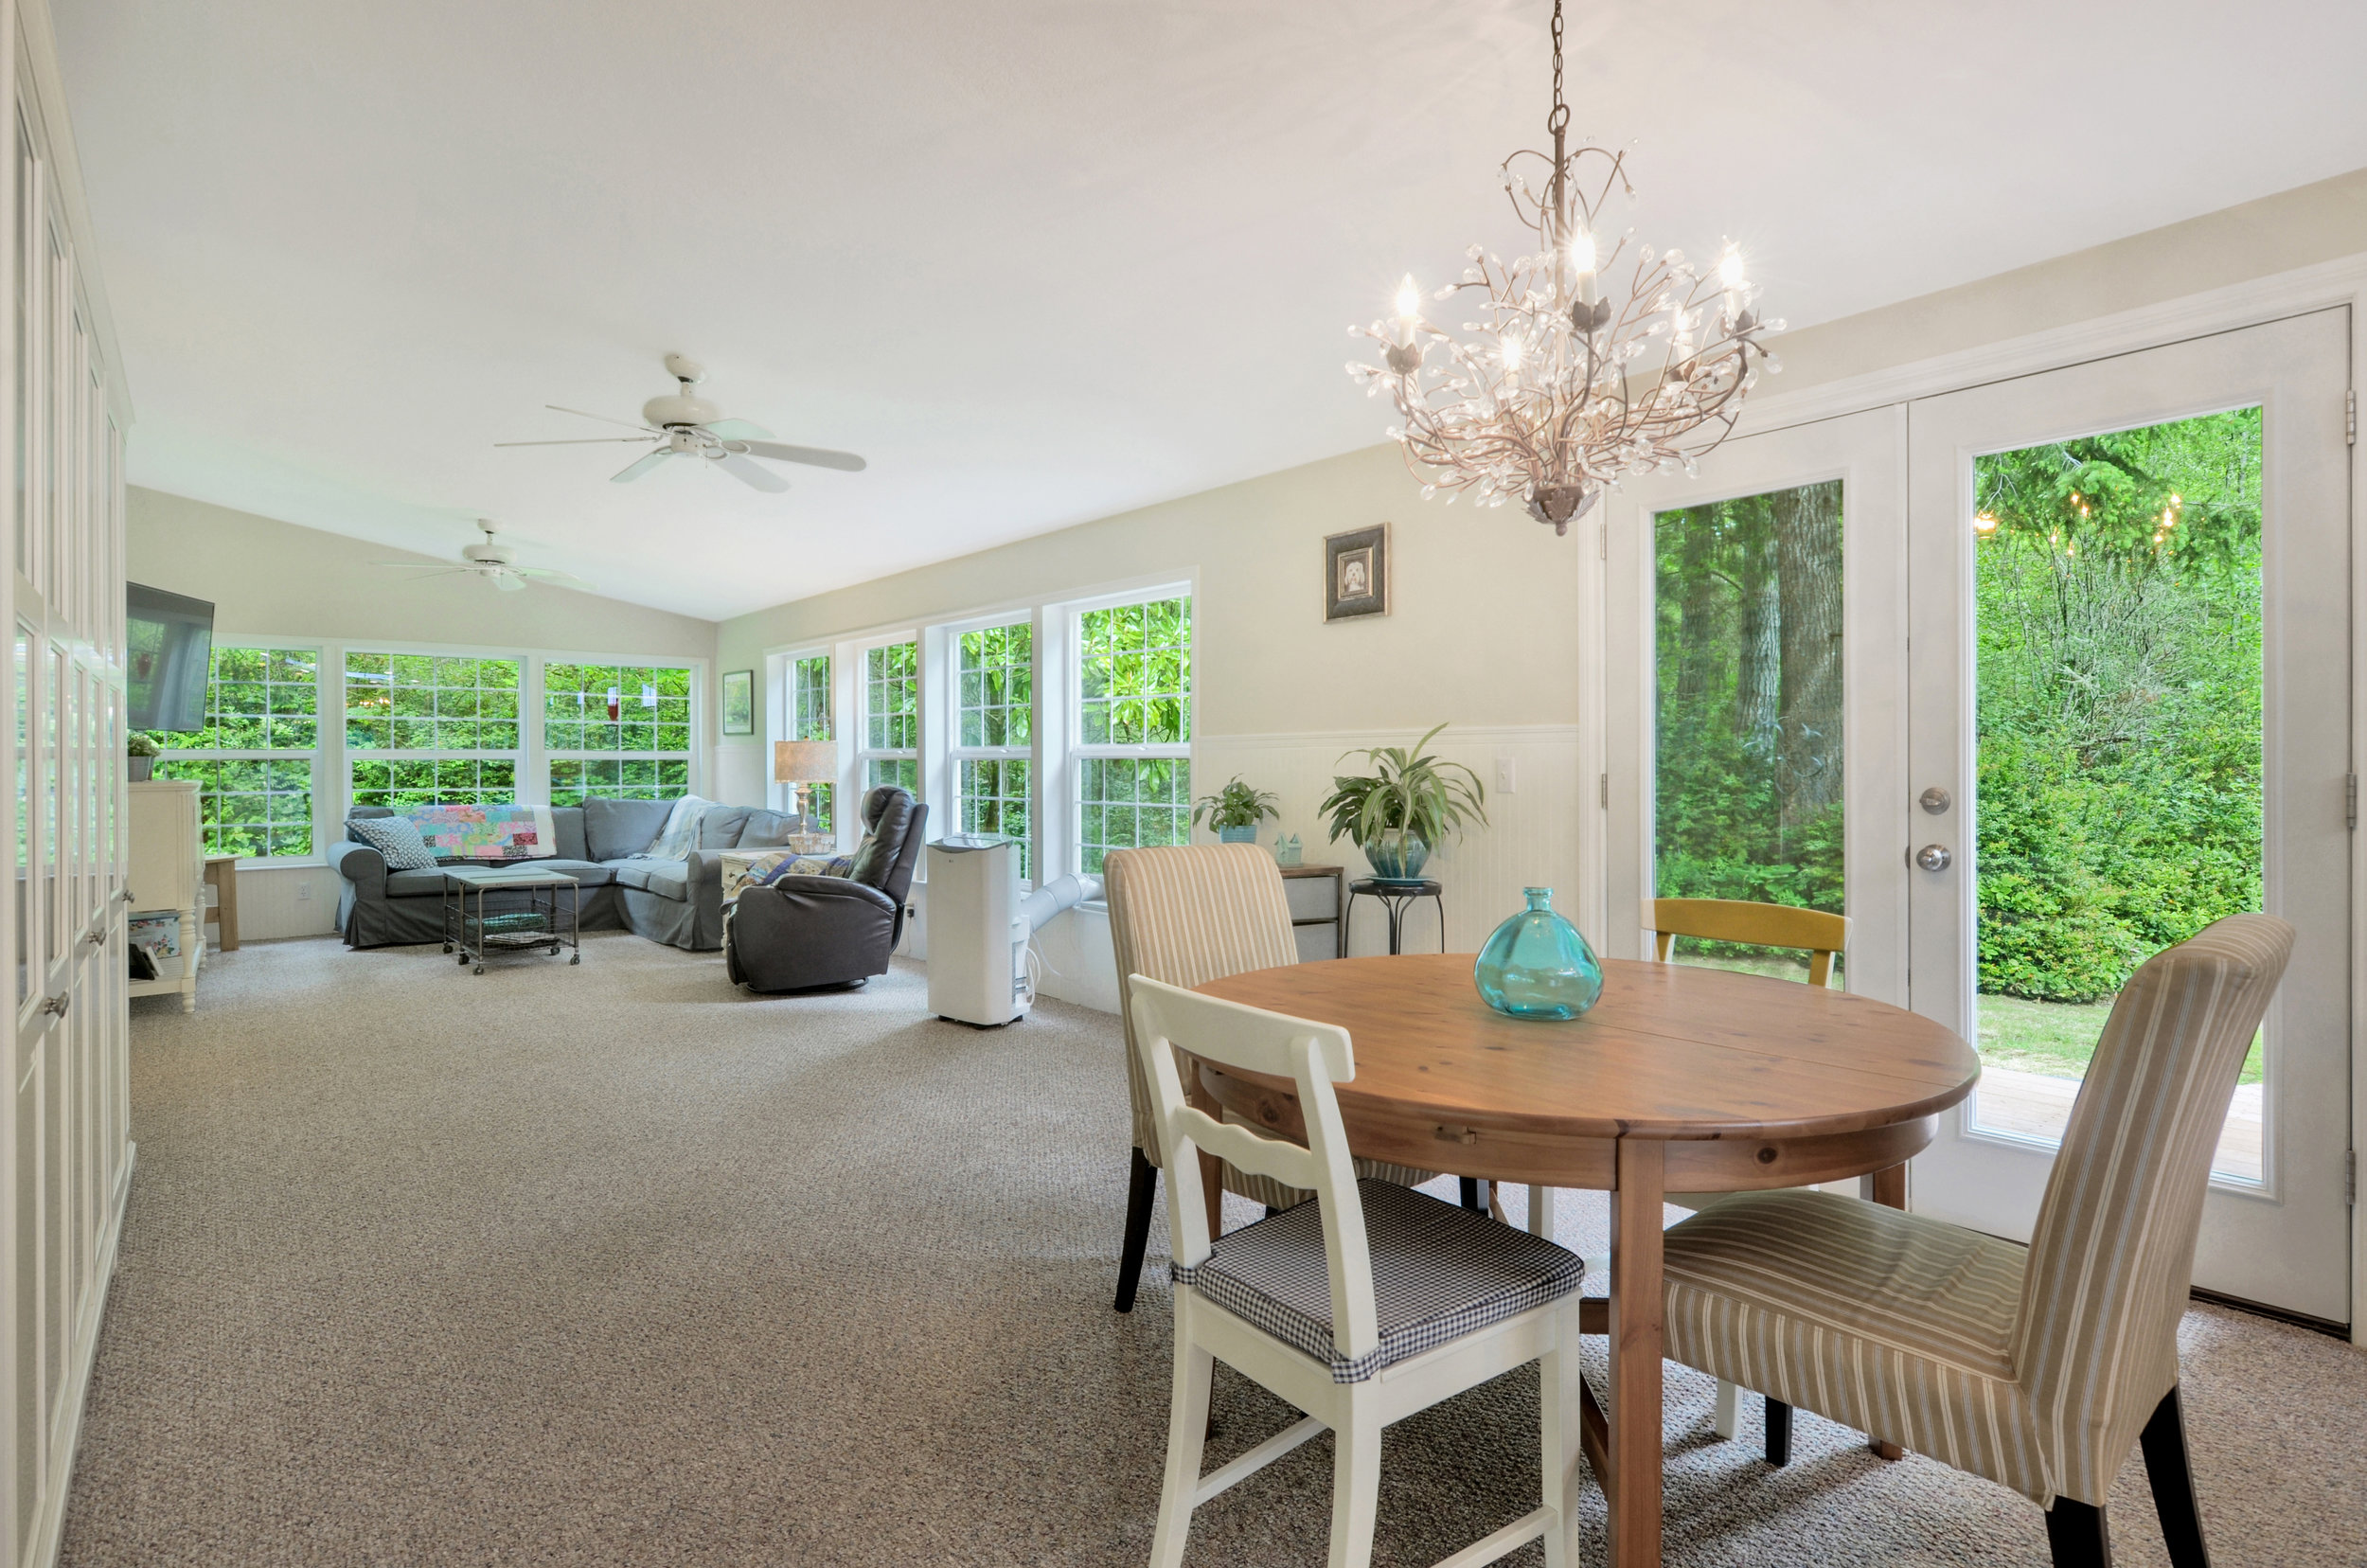 The main living space is comfortable and open. Set up a dining table with leaves so you can extend into this long room for parties or big family meals.